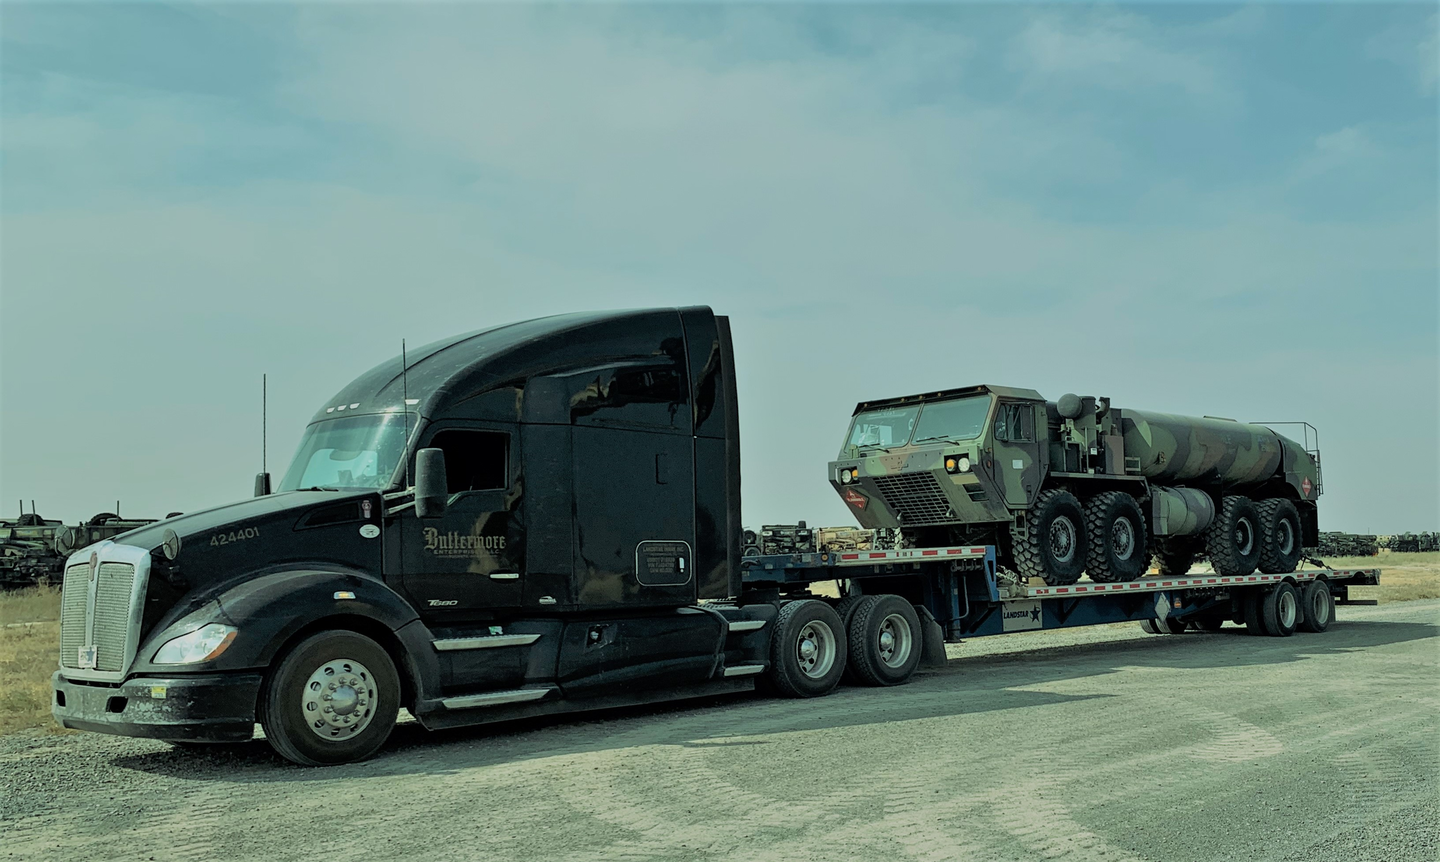 Lance Buttermore's 2015 Kenworth t680 carrying military machinery